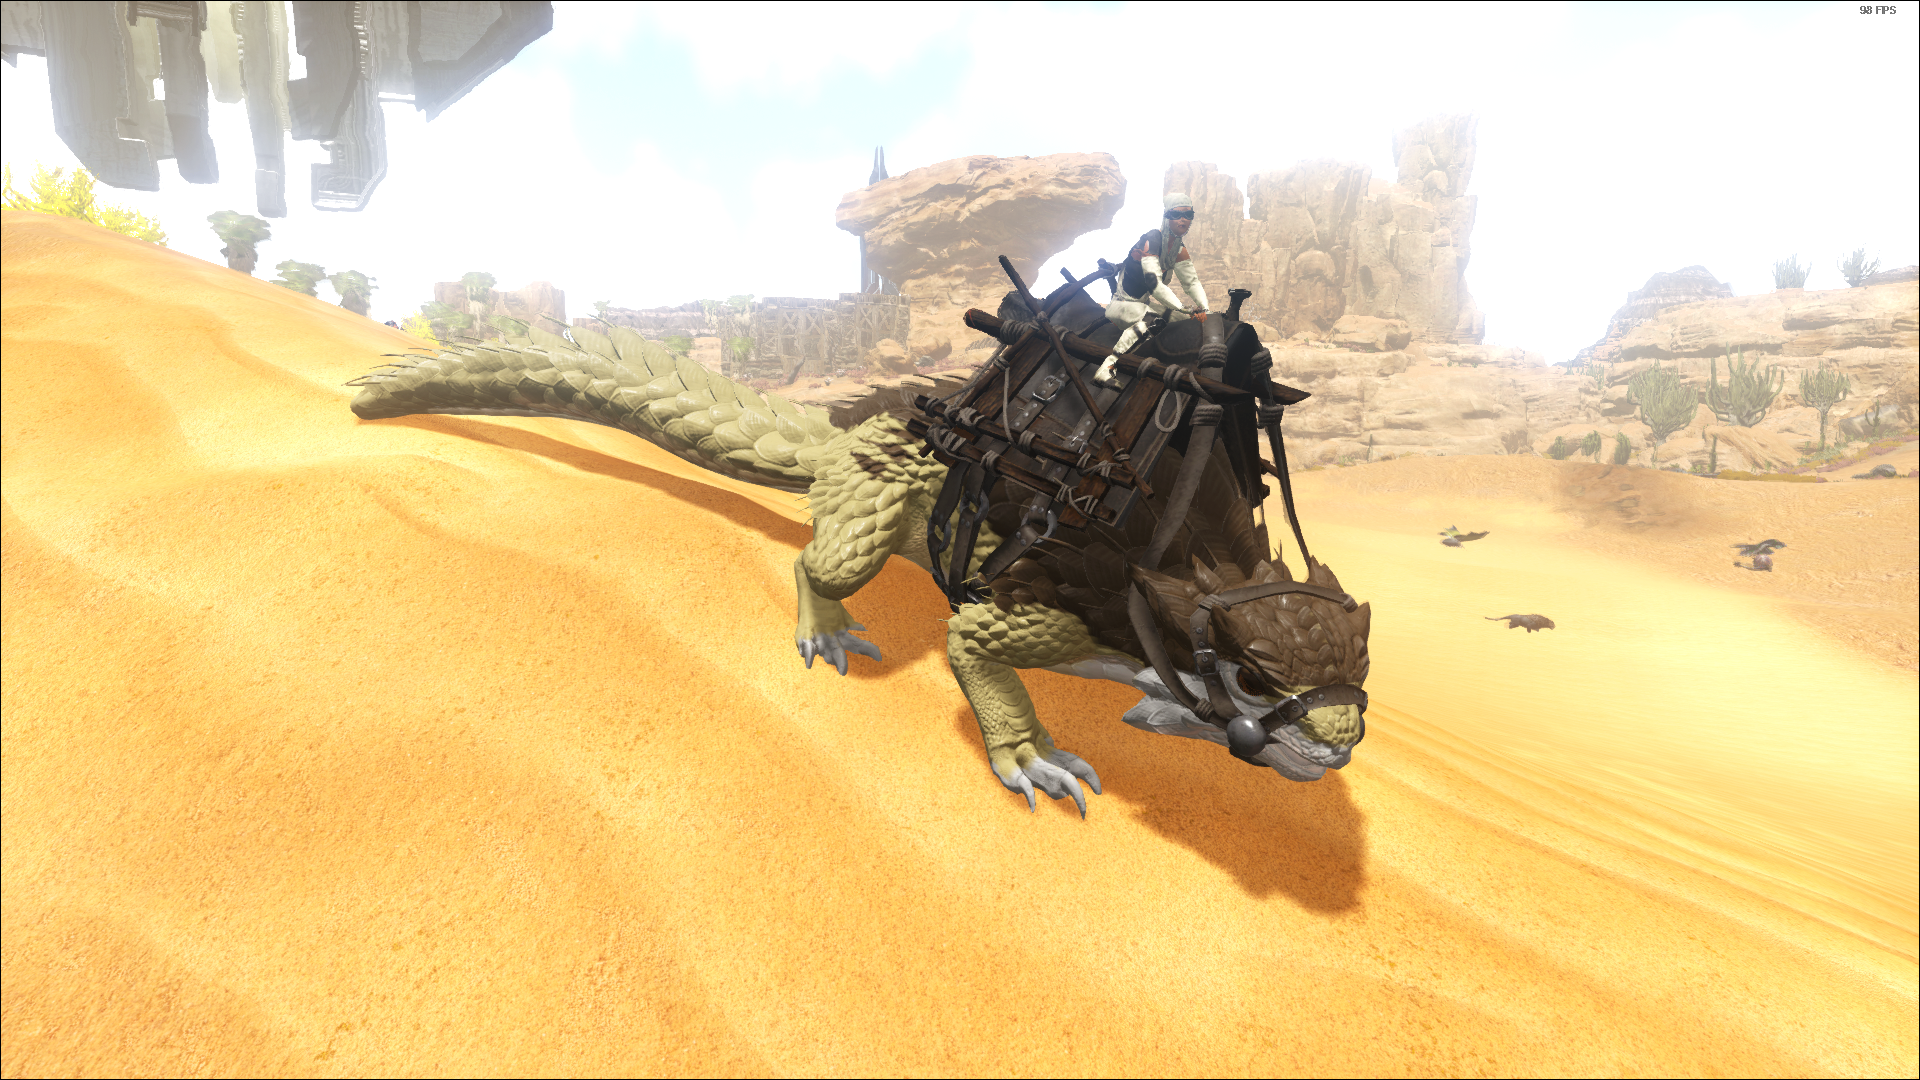 1478100316_ark-survival-evolved-screenshot-2016-11-02-17-22-19-65-jpg